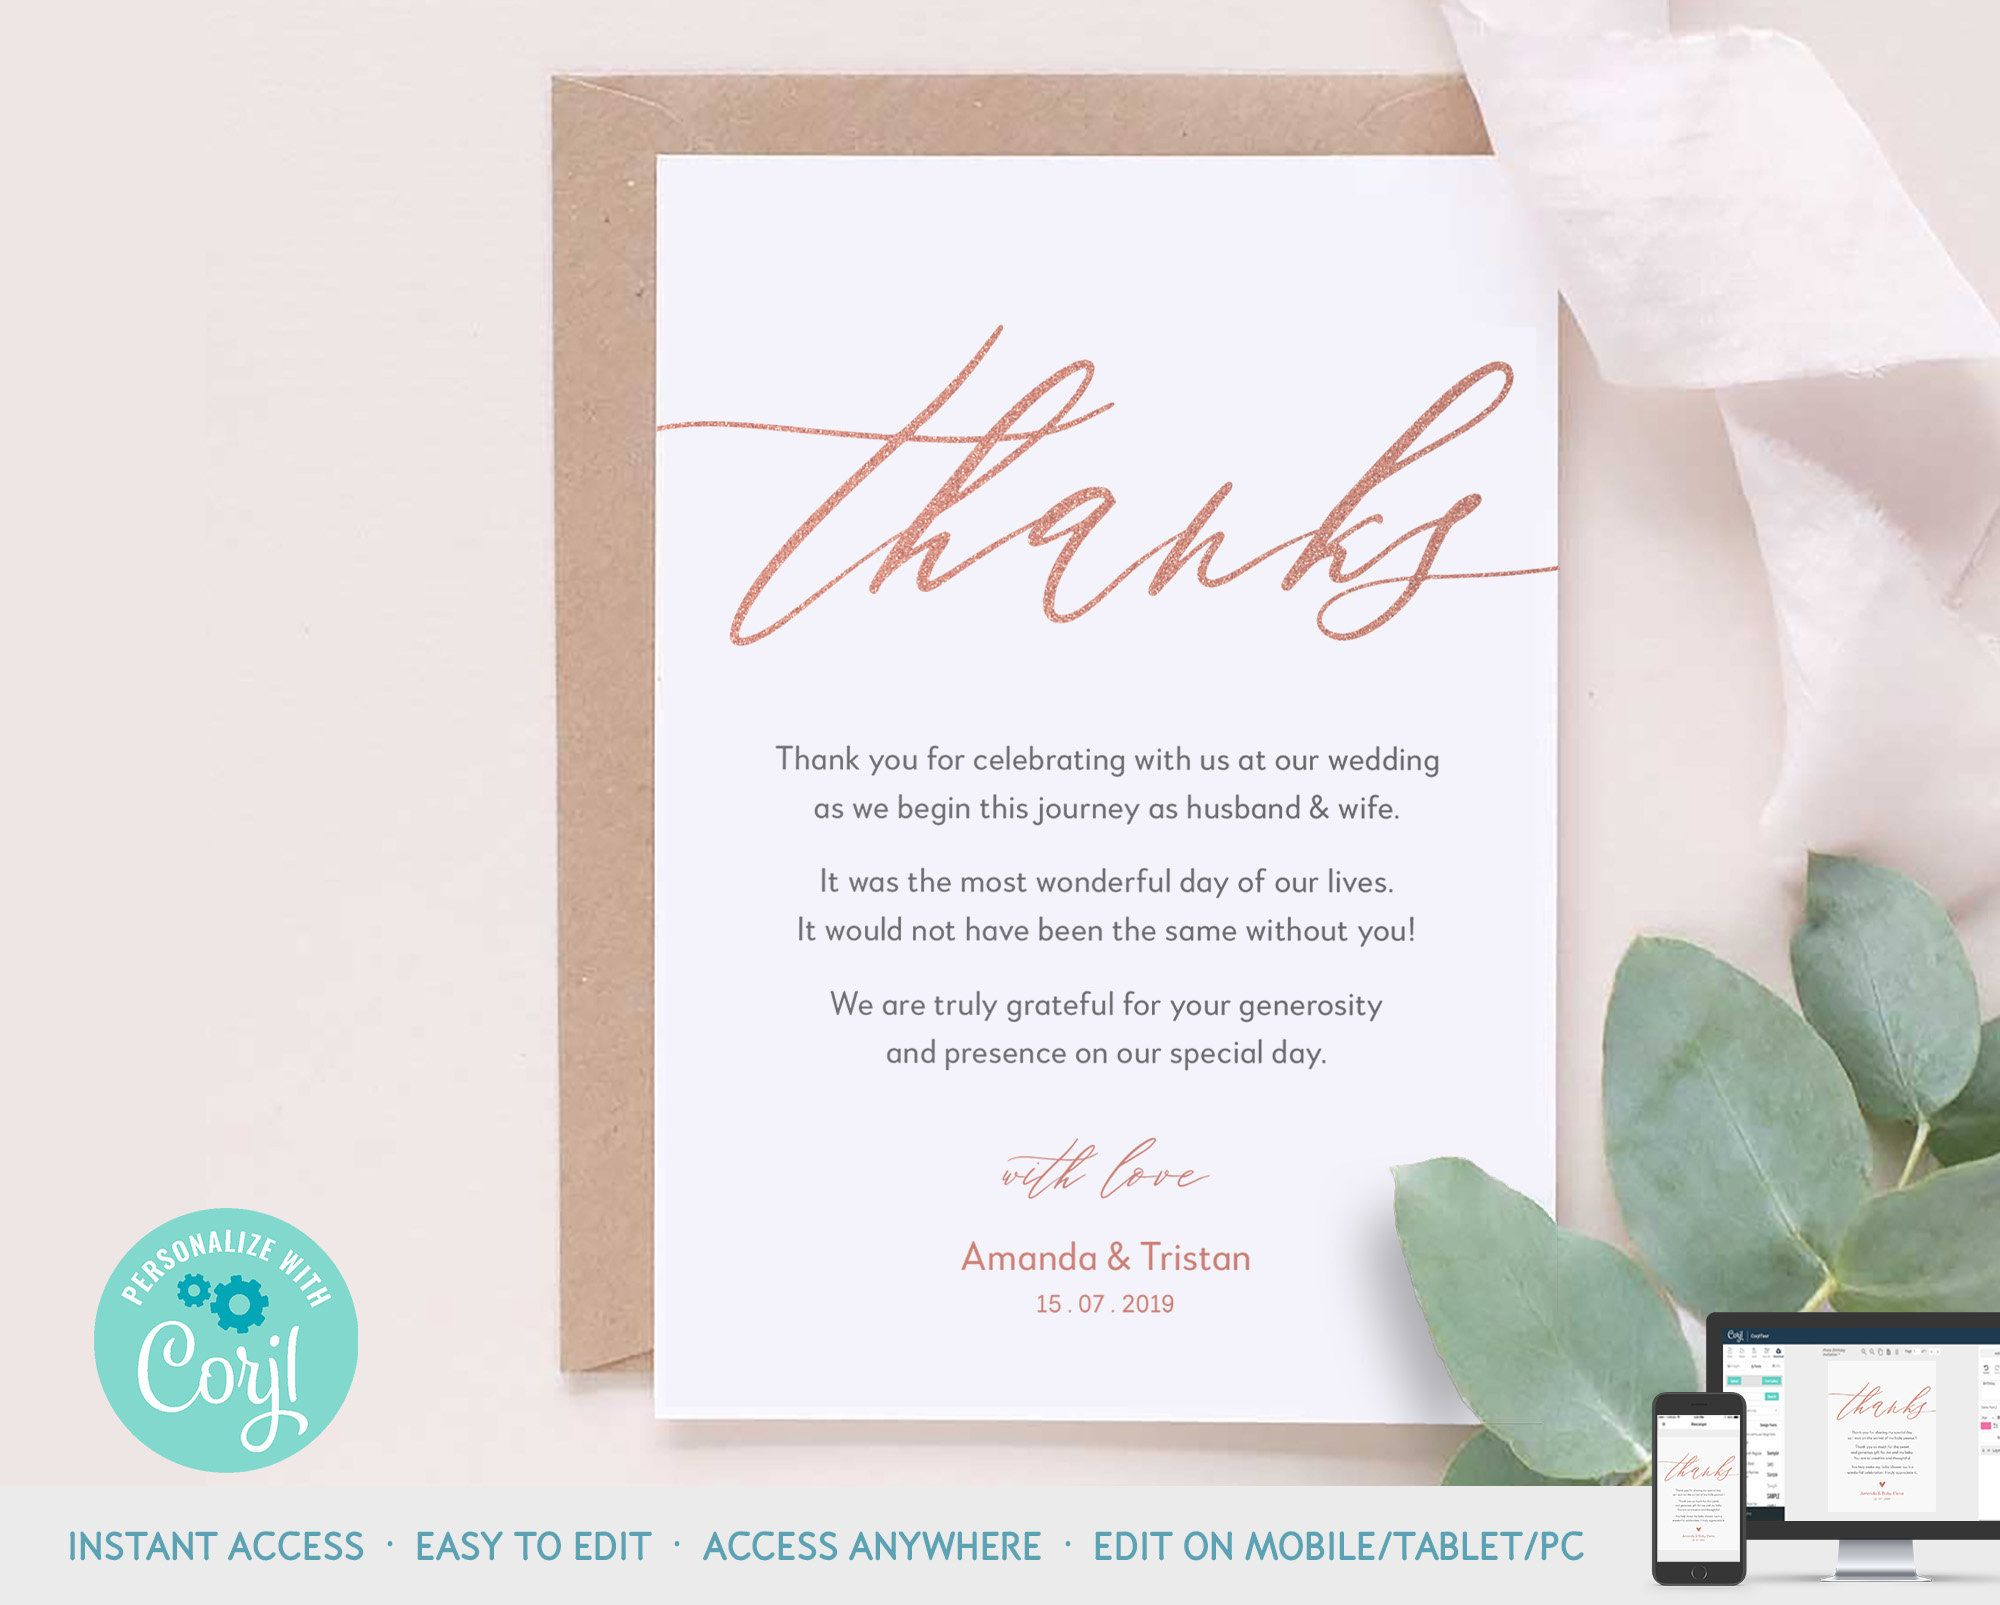 004 Exceptional Thank You Card Template Wedding Highest Clarity  Free Printable PublisherFull